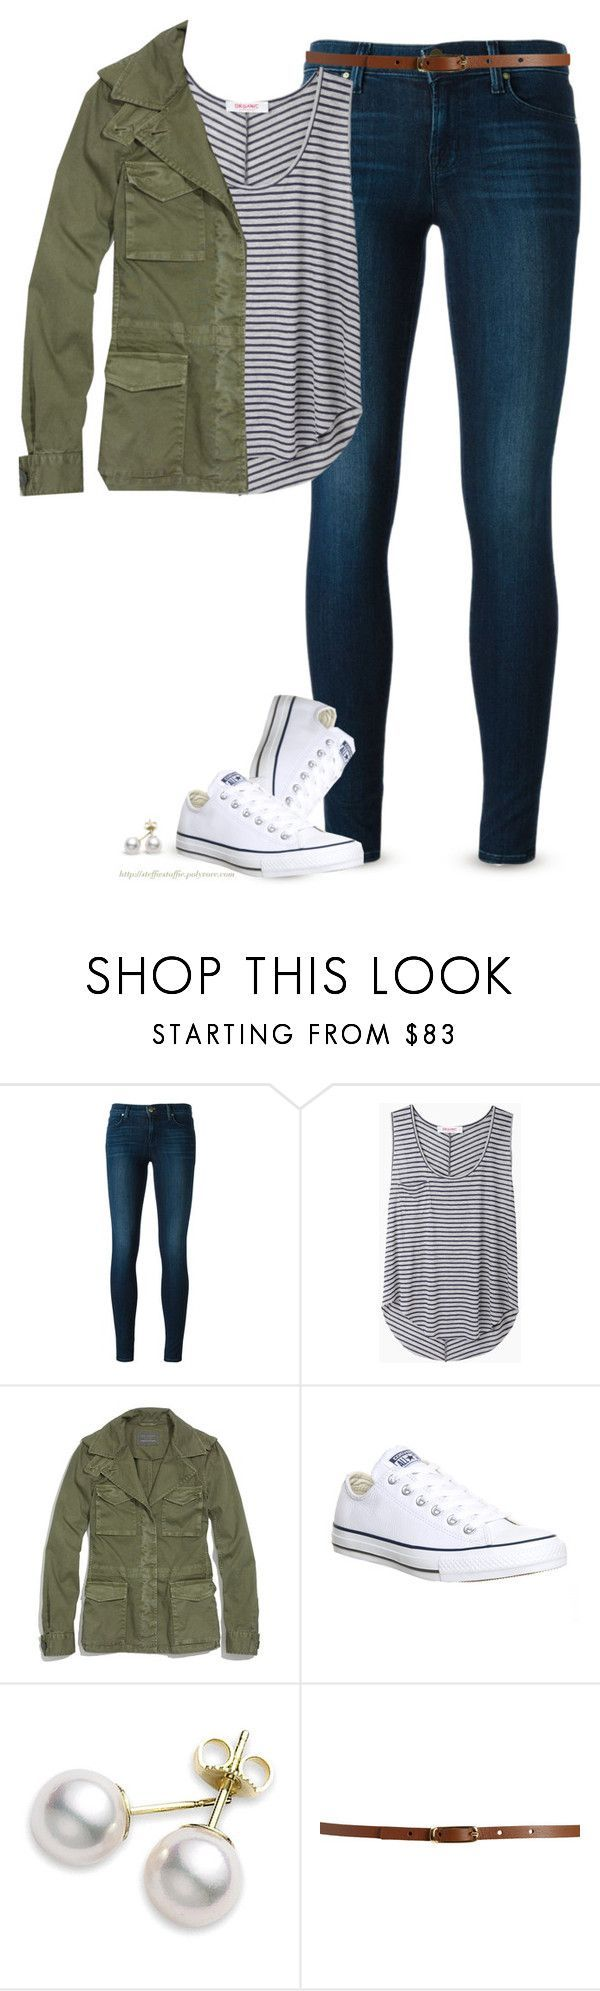 """Army Green jacket, Striped top & Chucks"" by steffiestaffie ❤ liked on Polyvore featuring J Brand, Organic by John Patrick, Madewell, Converse, Mikimoto and Maison Boinet"